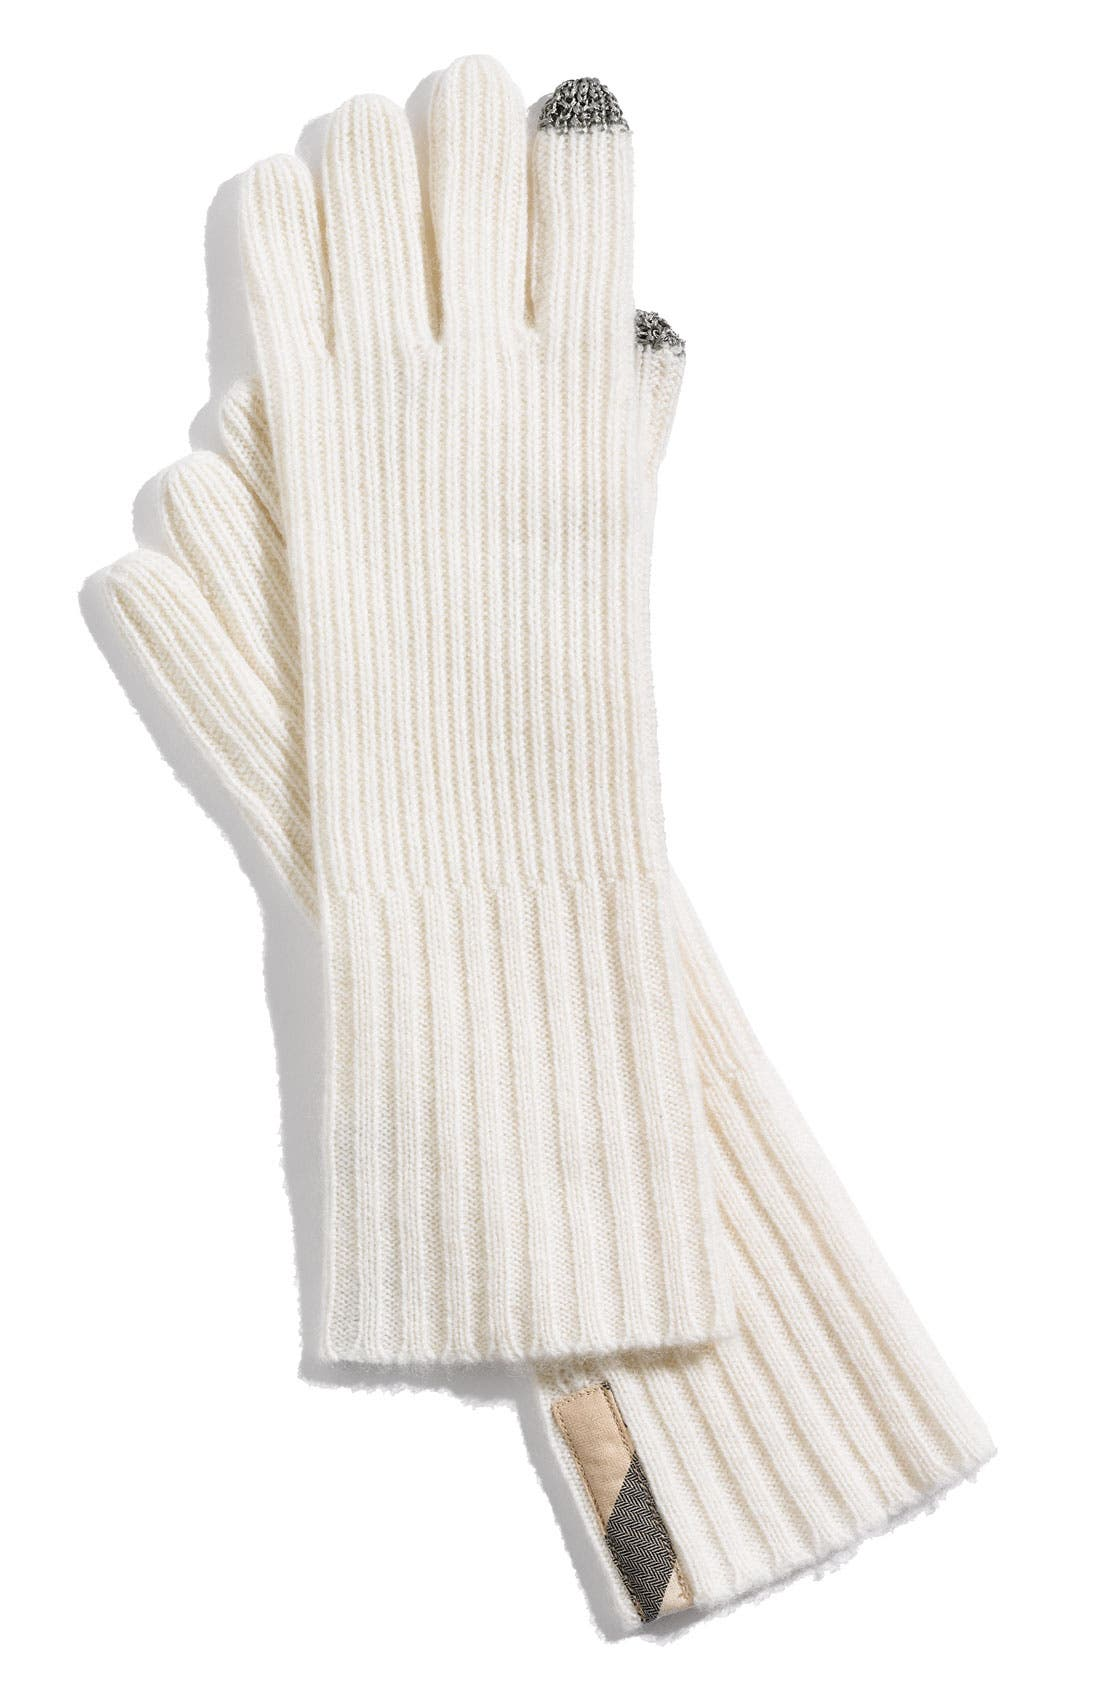 Main Image - Burberry Ribbed Cashmere Gloves